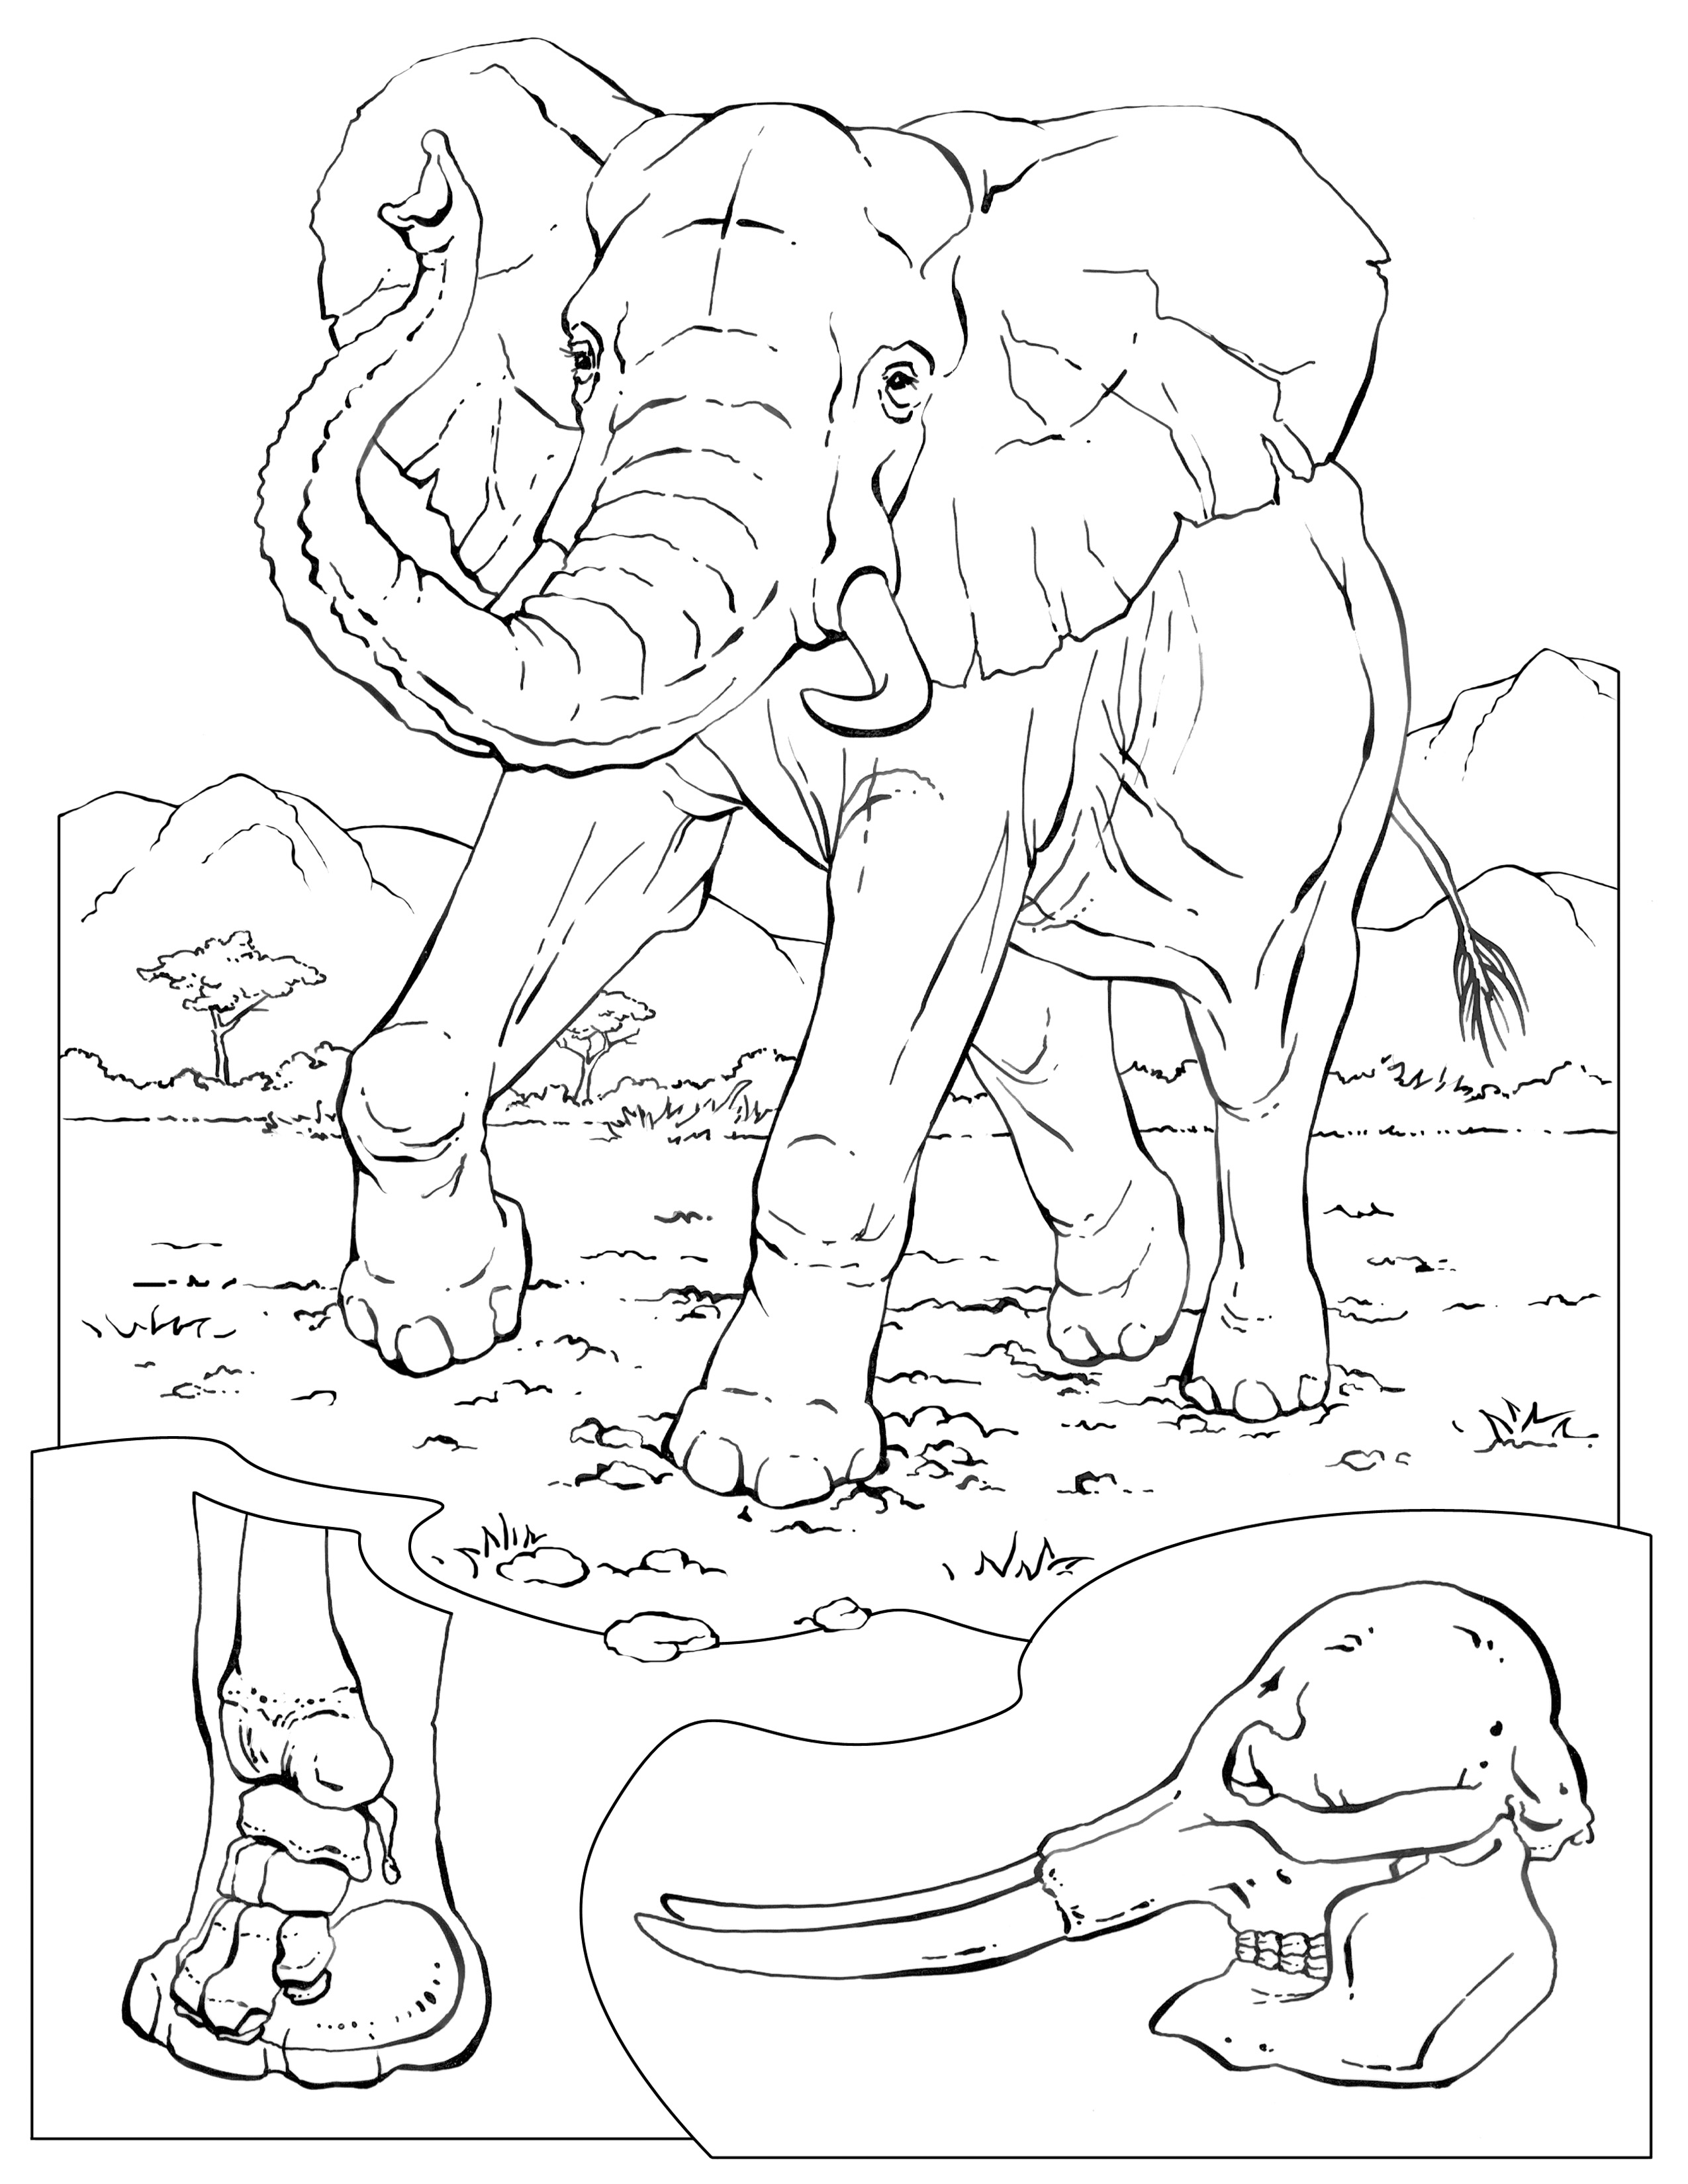 coloring worksheets animals 30 free coloring pages a geometric animal coloring coloring animals worksheets